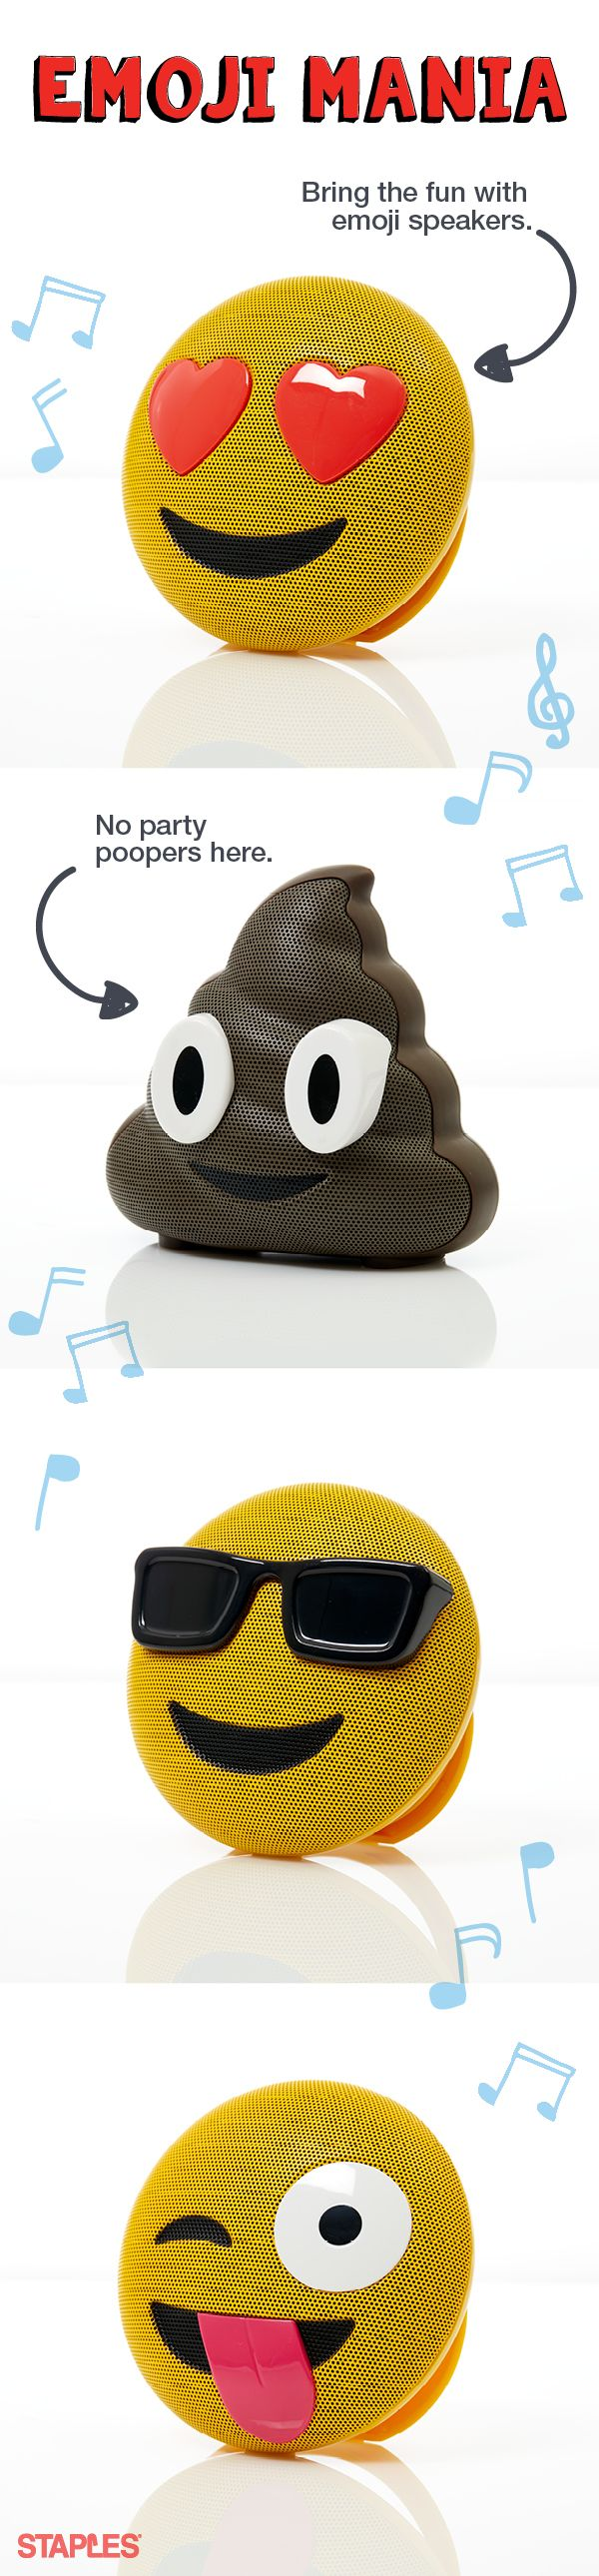 Rock out with emoji speakers. We're all heart-eyes for these fun Jamoji Bluetooth speakers. They're pocket-sized and party-ready, so you can bring the good vibes wherever you go. Just connect it to your device and blast your end-of-summer soundtrack. Pick up your favorite at Staples.